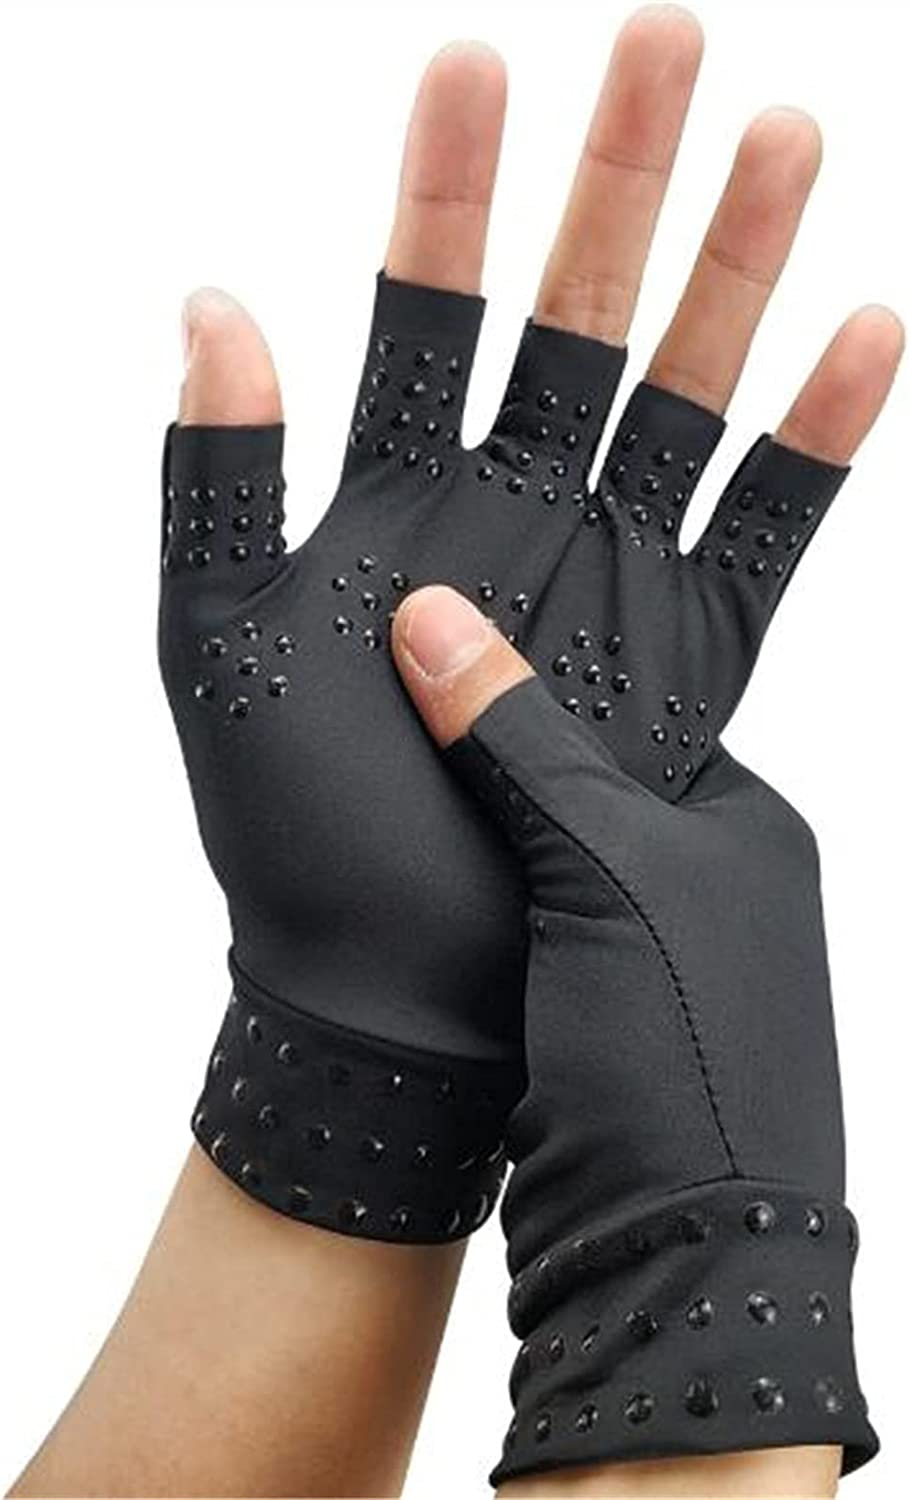 1 Pair Max Challenge the lowest price of Japan 50% OFF Compression Arthritis Gloves Joint Relief Arthritic Pain